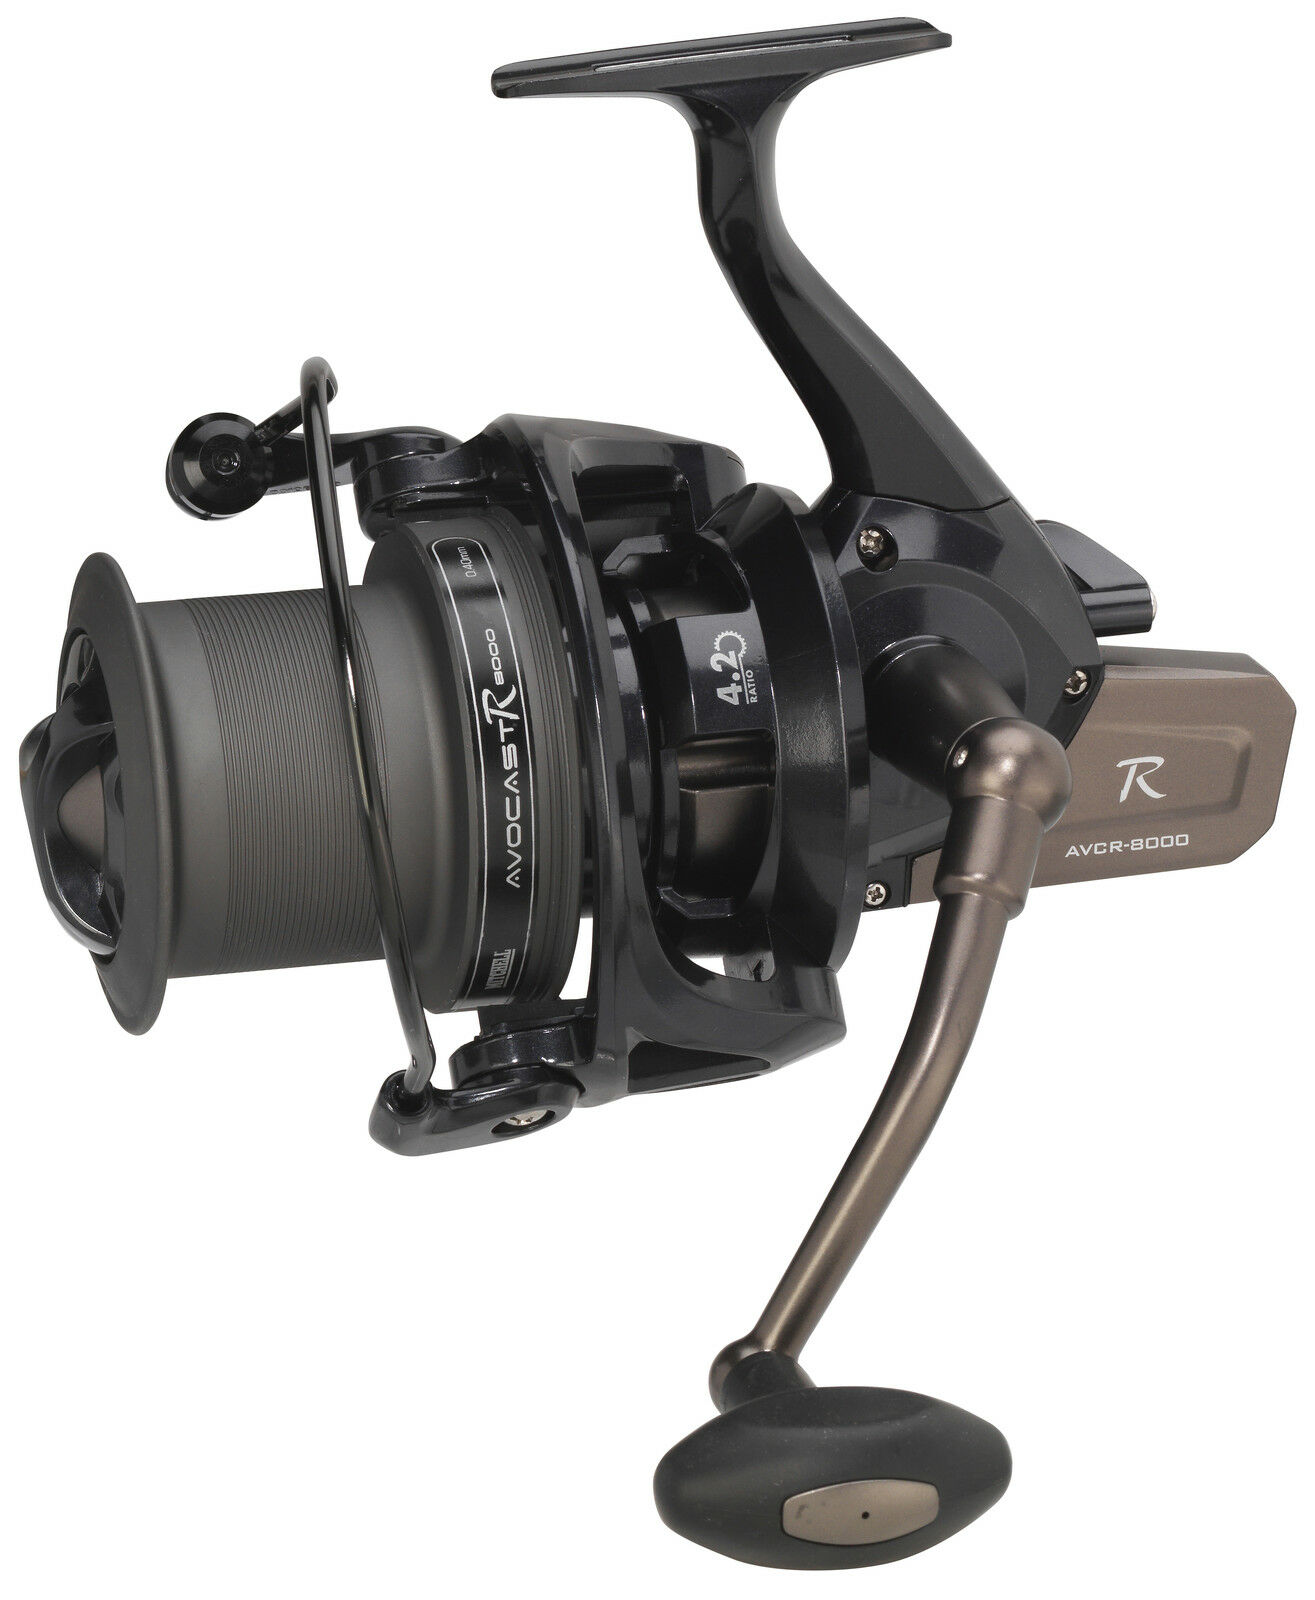 Mitchell NEW AVOCAST R Fishing Reel - All Größes